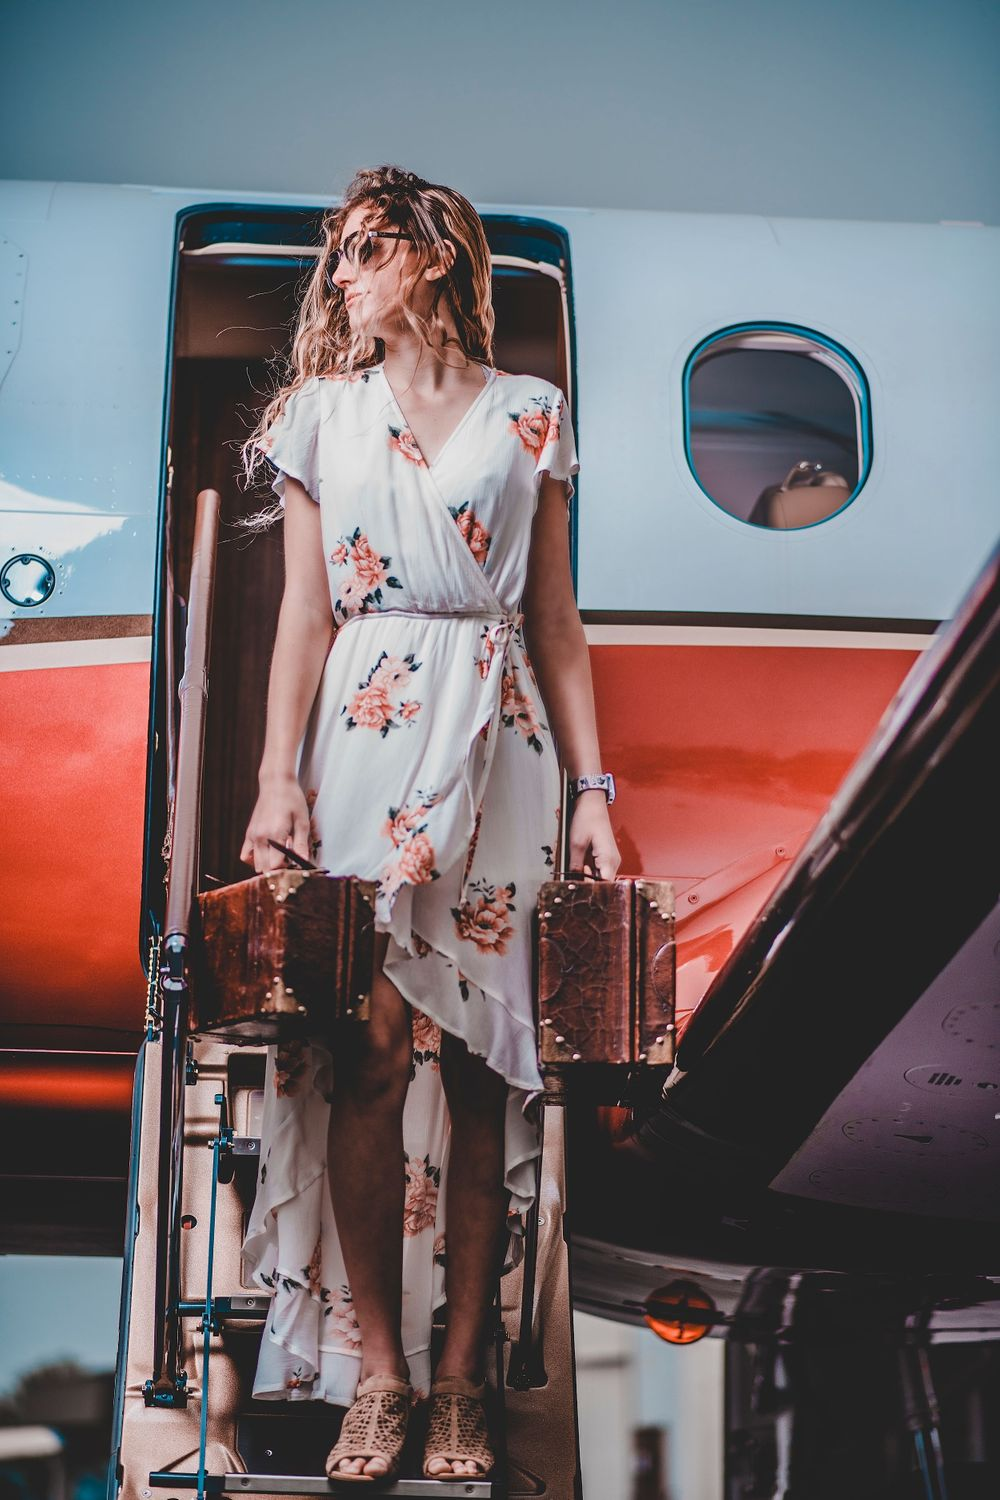 Fashion Portrait of girl in dress for senior photos with airplane